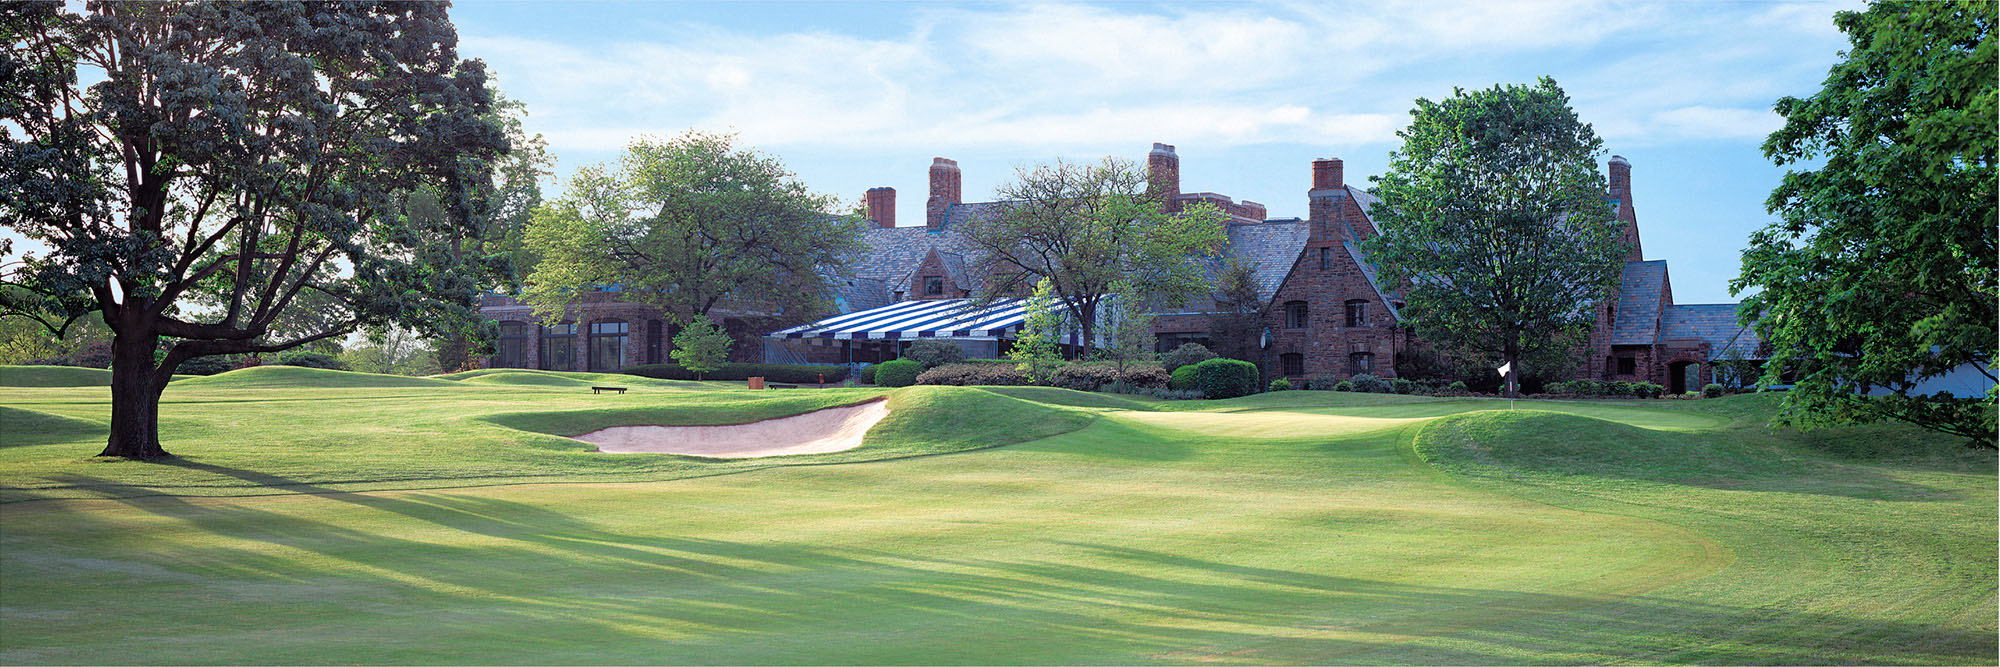 Golf Course Image - Winged Foot West No. 18